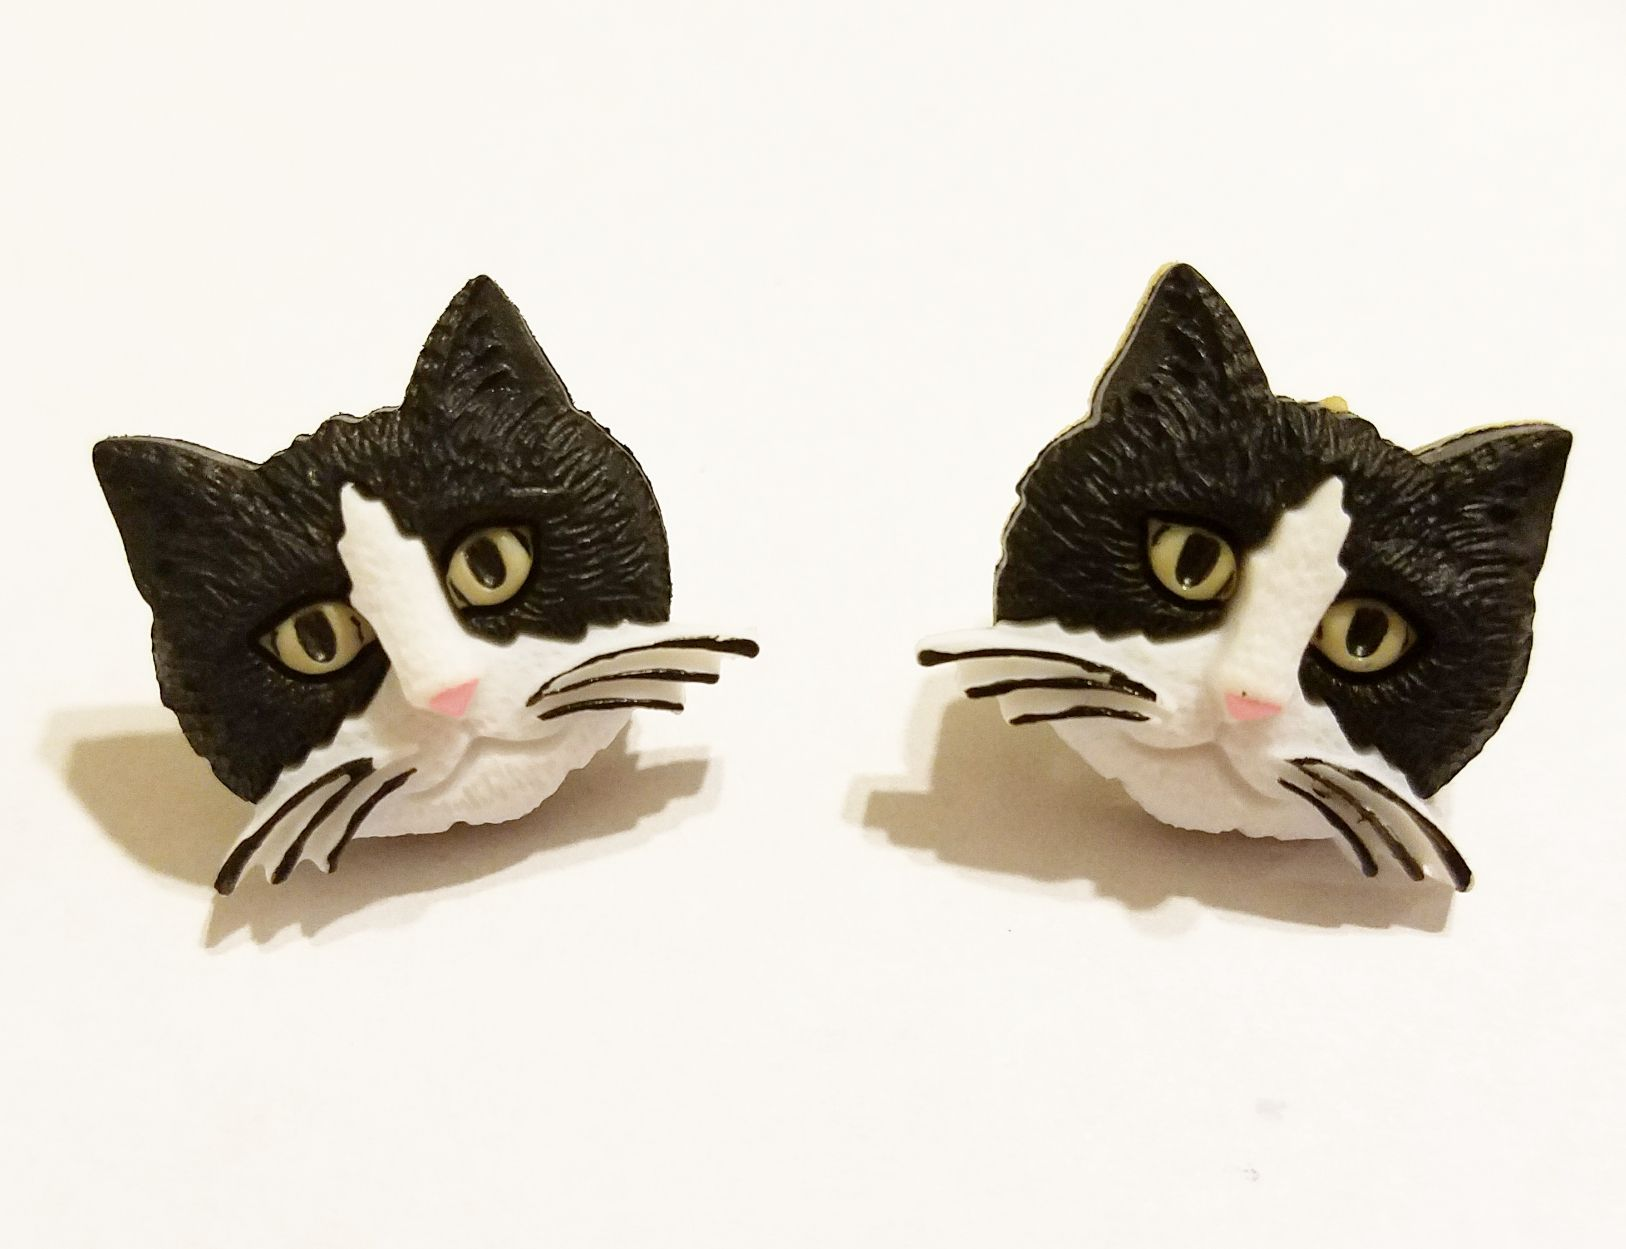 giftsforher unique gifts earrings kriszcreations jewelry cats